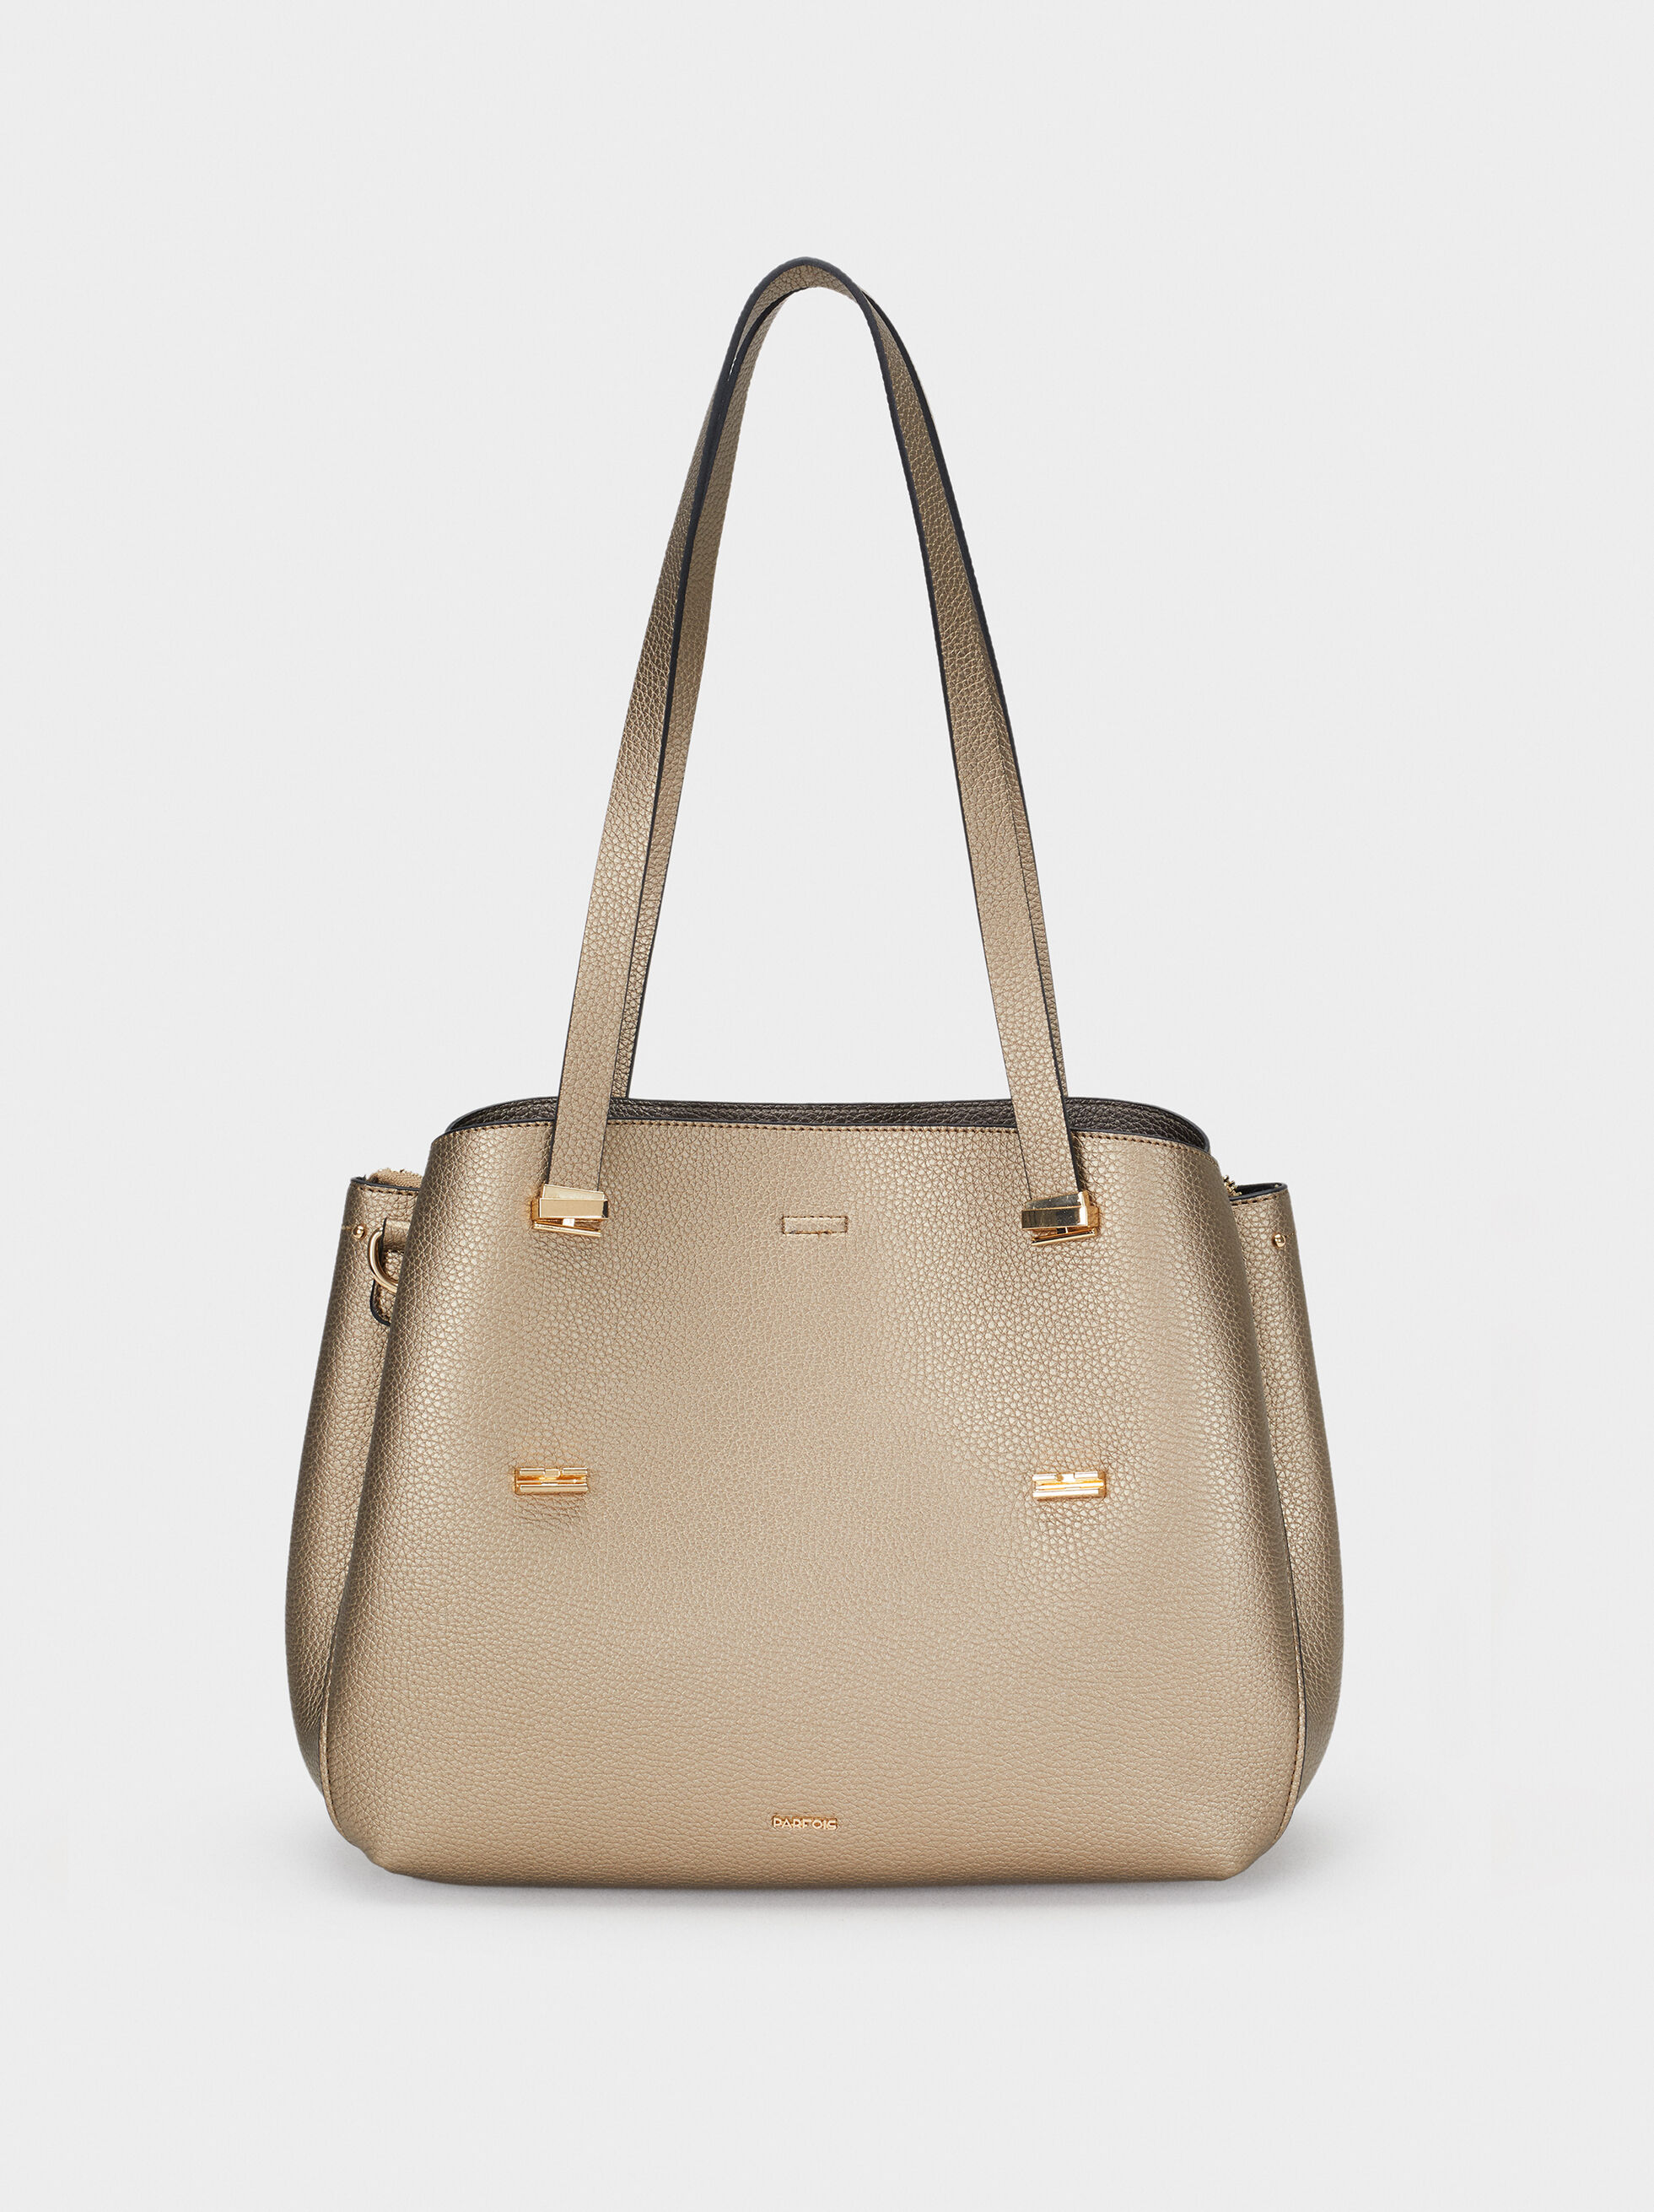 Embossed Tote Bag, Golden, hi-res